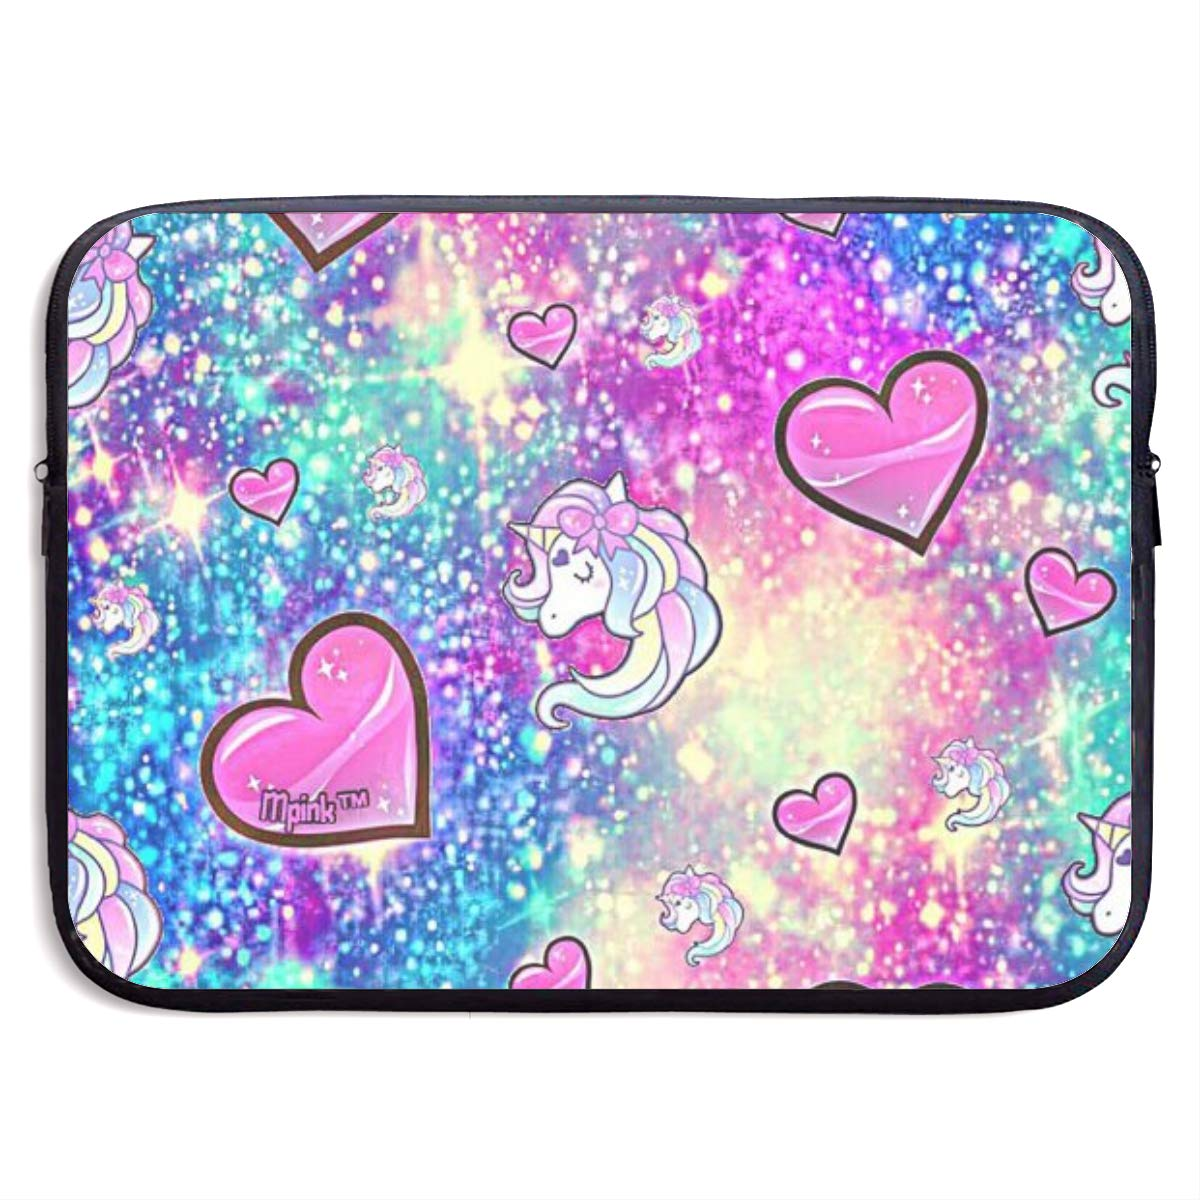 Pink Hear Black Laptop Sleeve 15 inch Shock Resistant Notebook Briefcase Computer Protective Bag Tablet Carrying Case for MacBook Pro//MacBook Air//Asus//Dell//Lenovo//Hp//Samsung//Sony